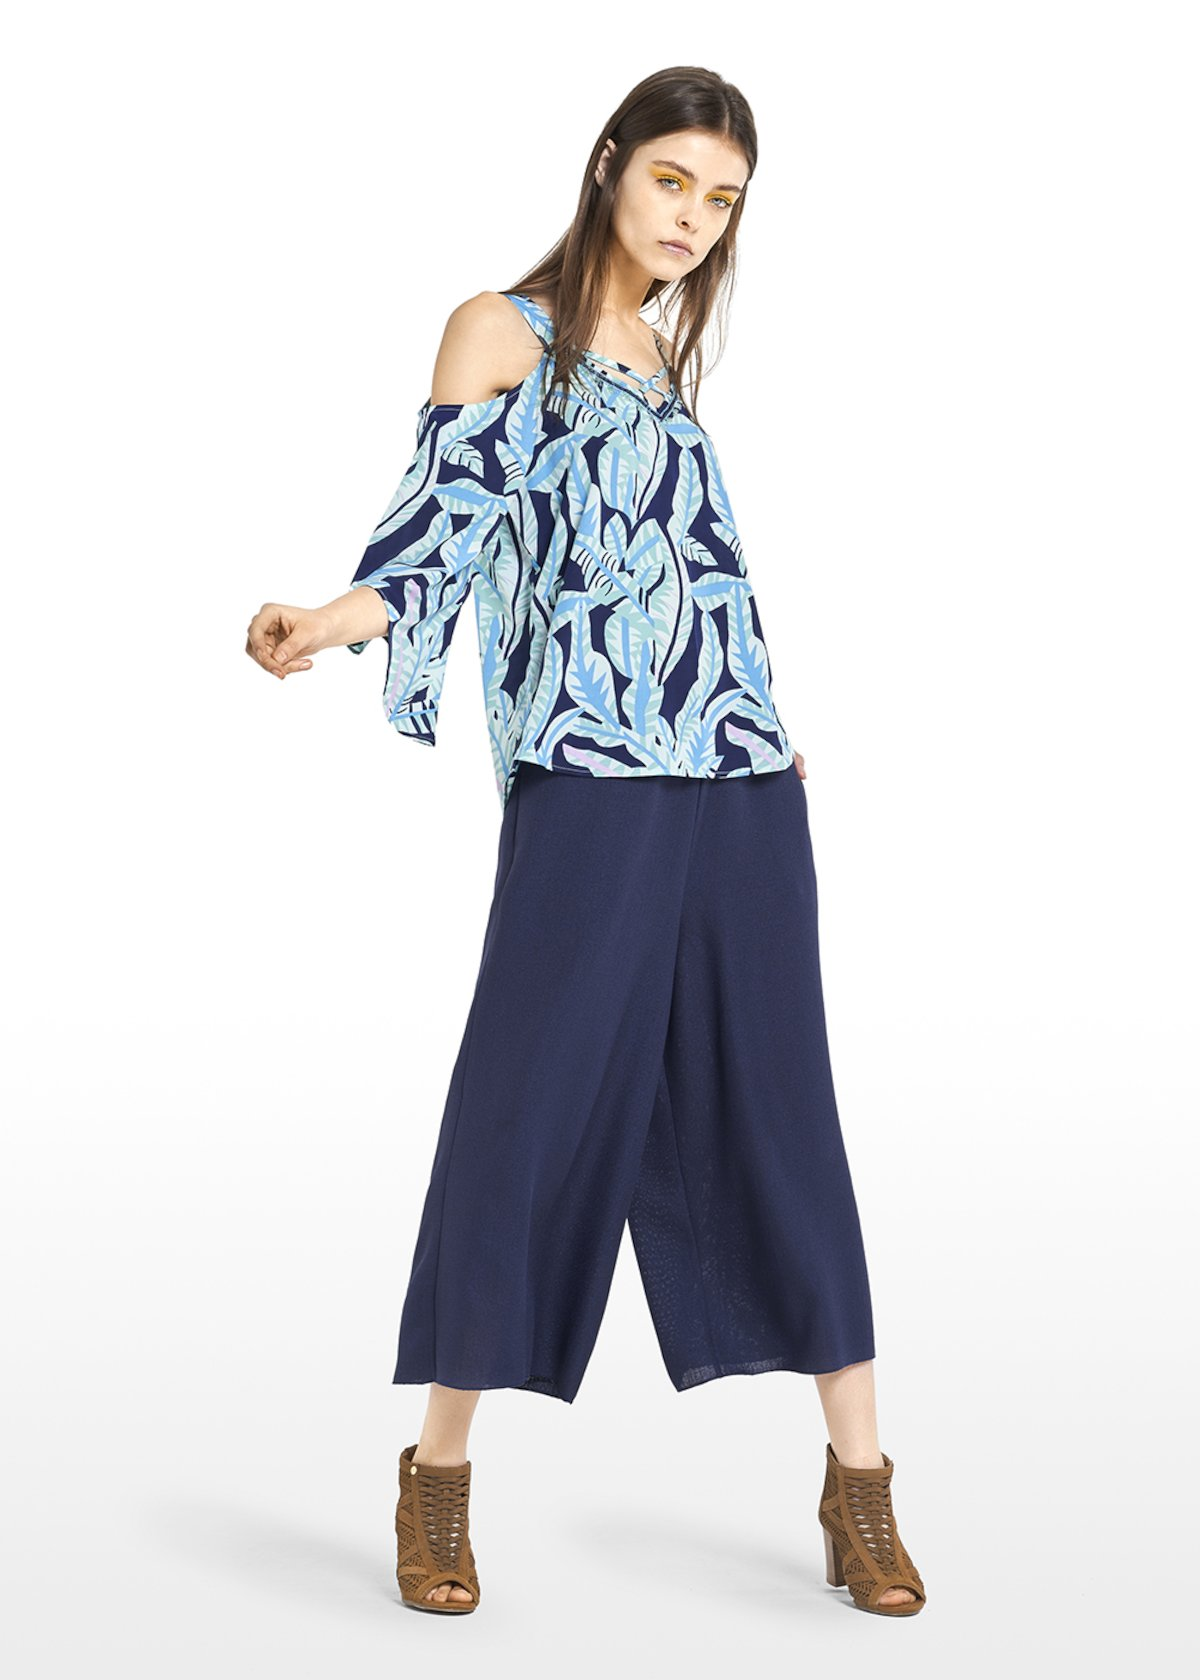 All over printed Corinne blouse with criss-cross at the neckline